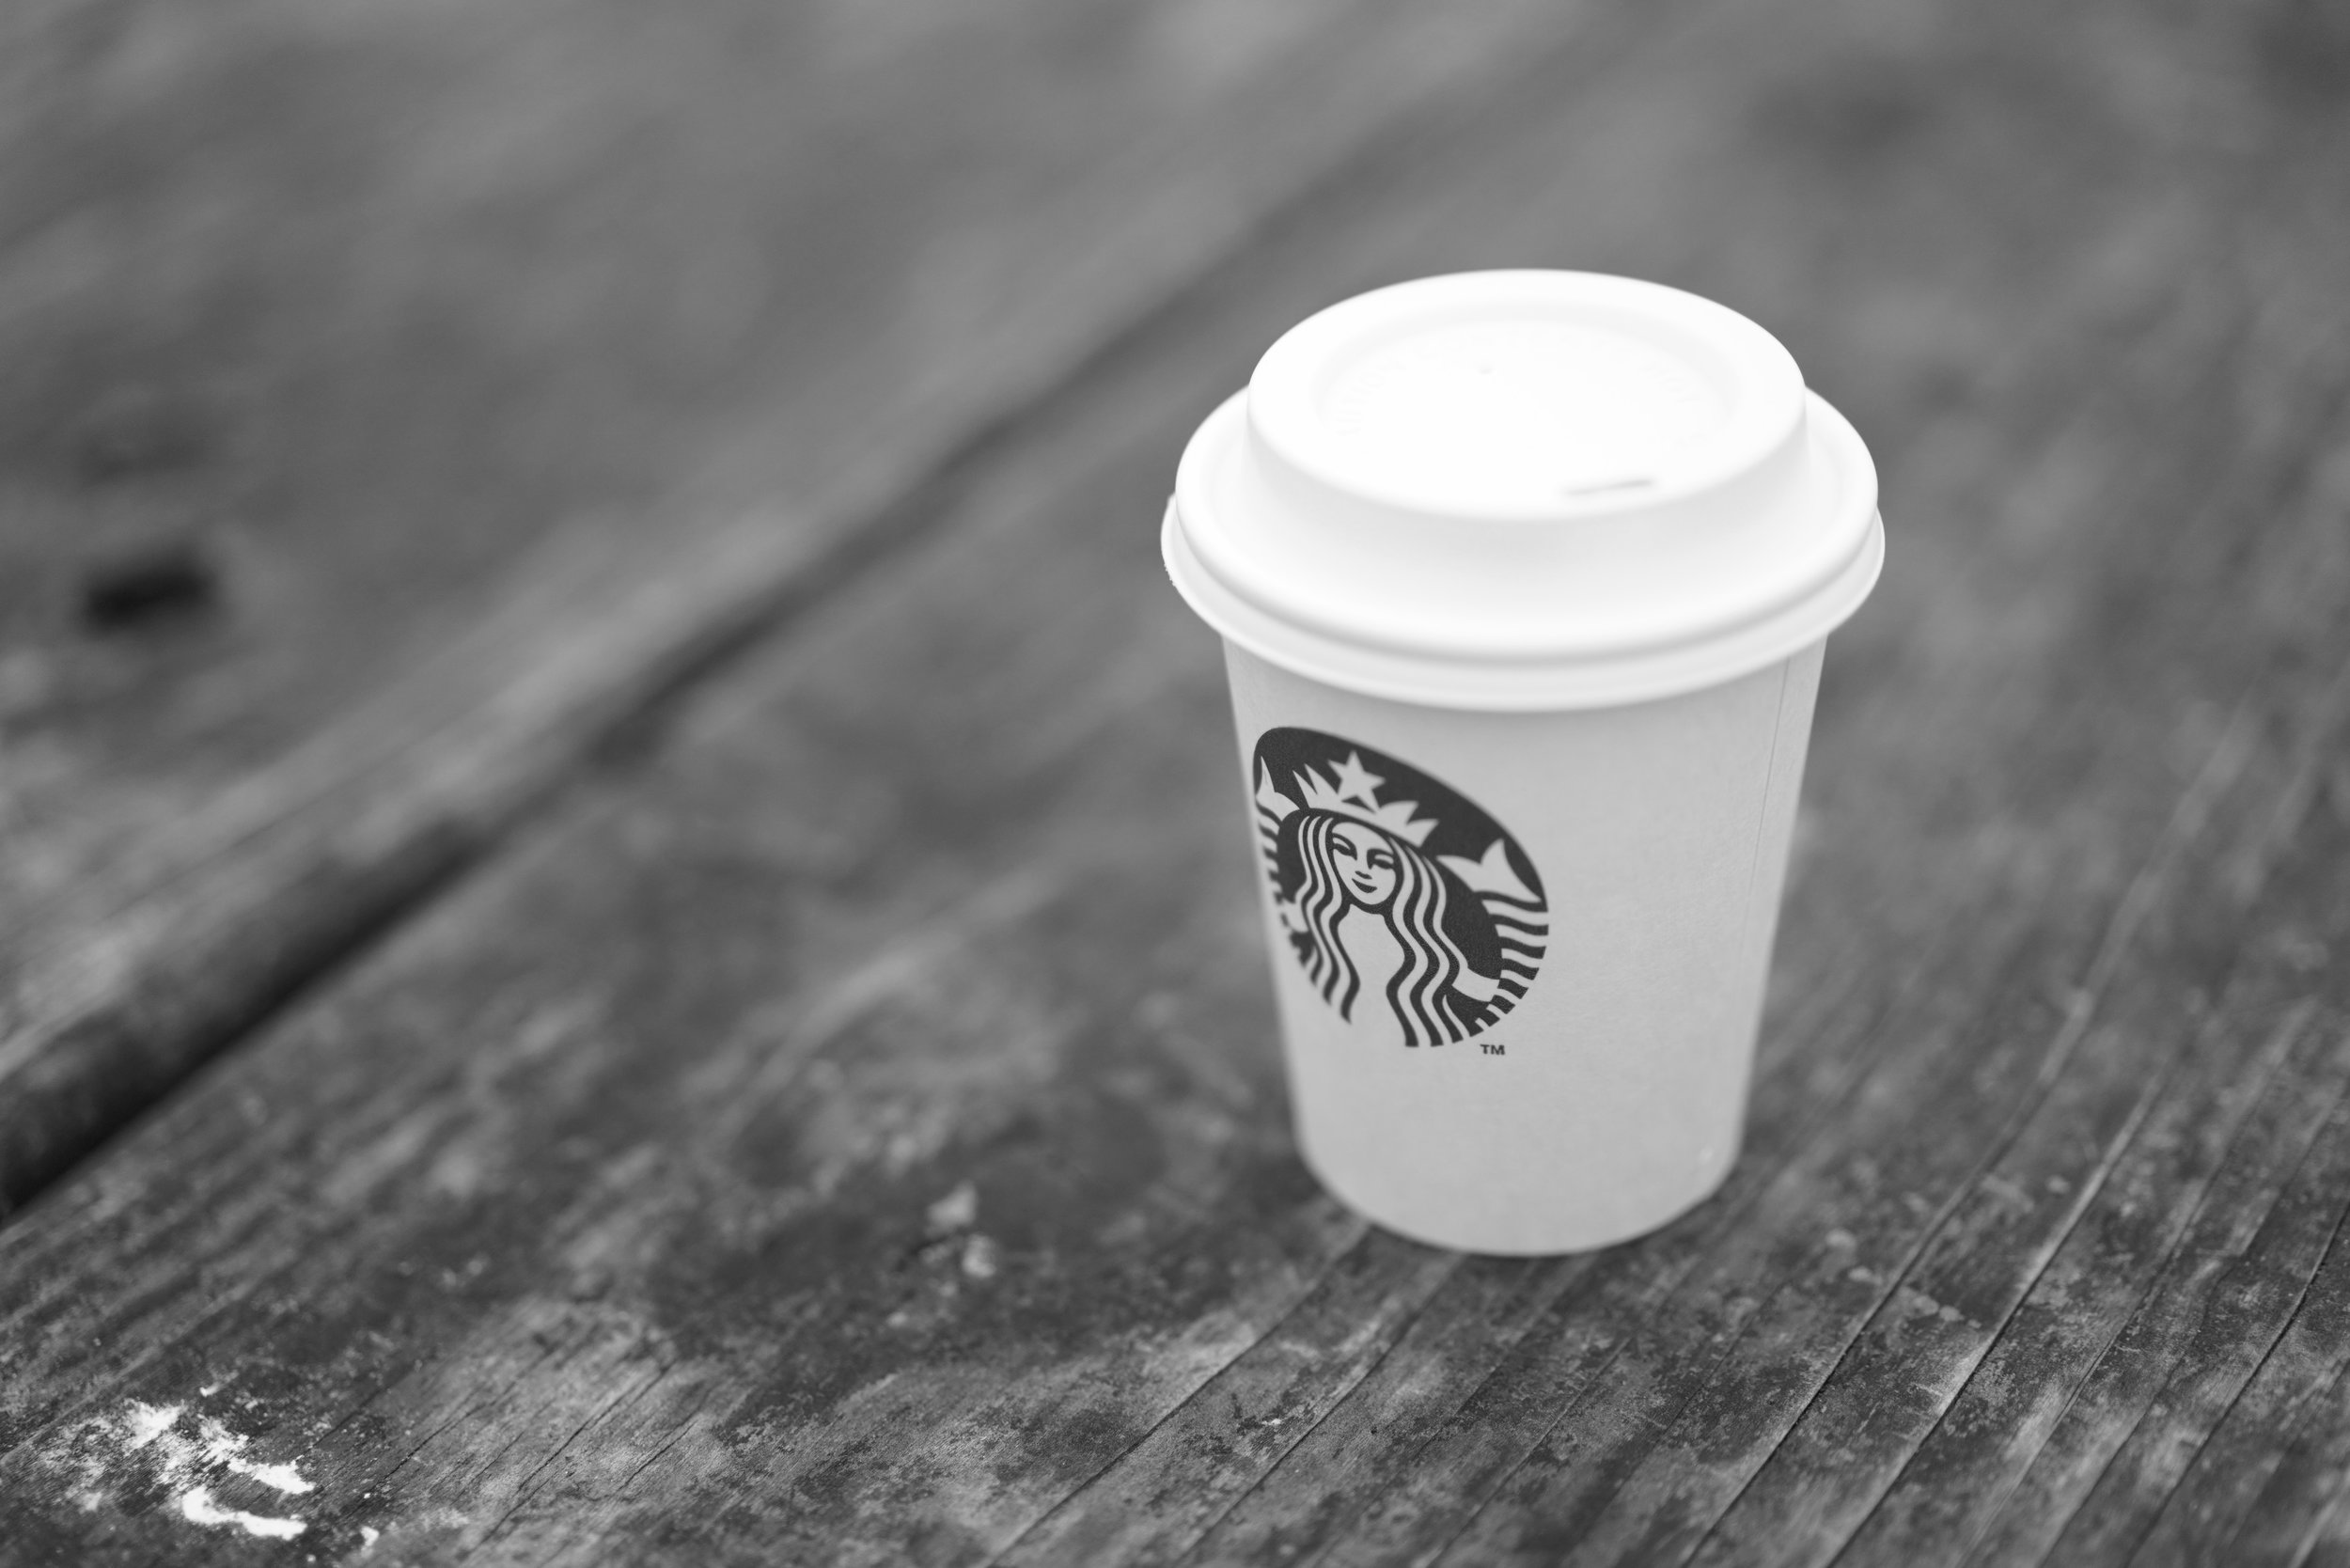 A disposable Starbucks cup on a bench.